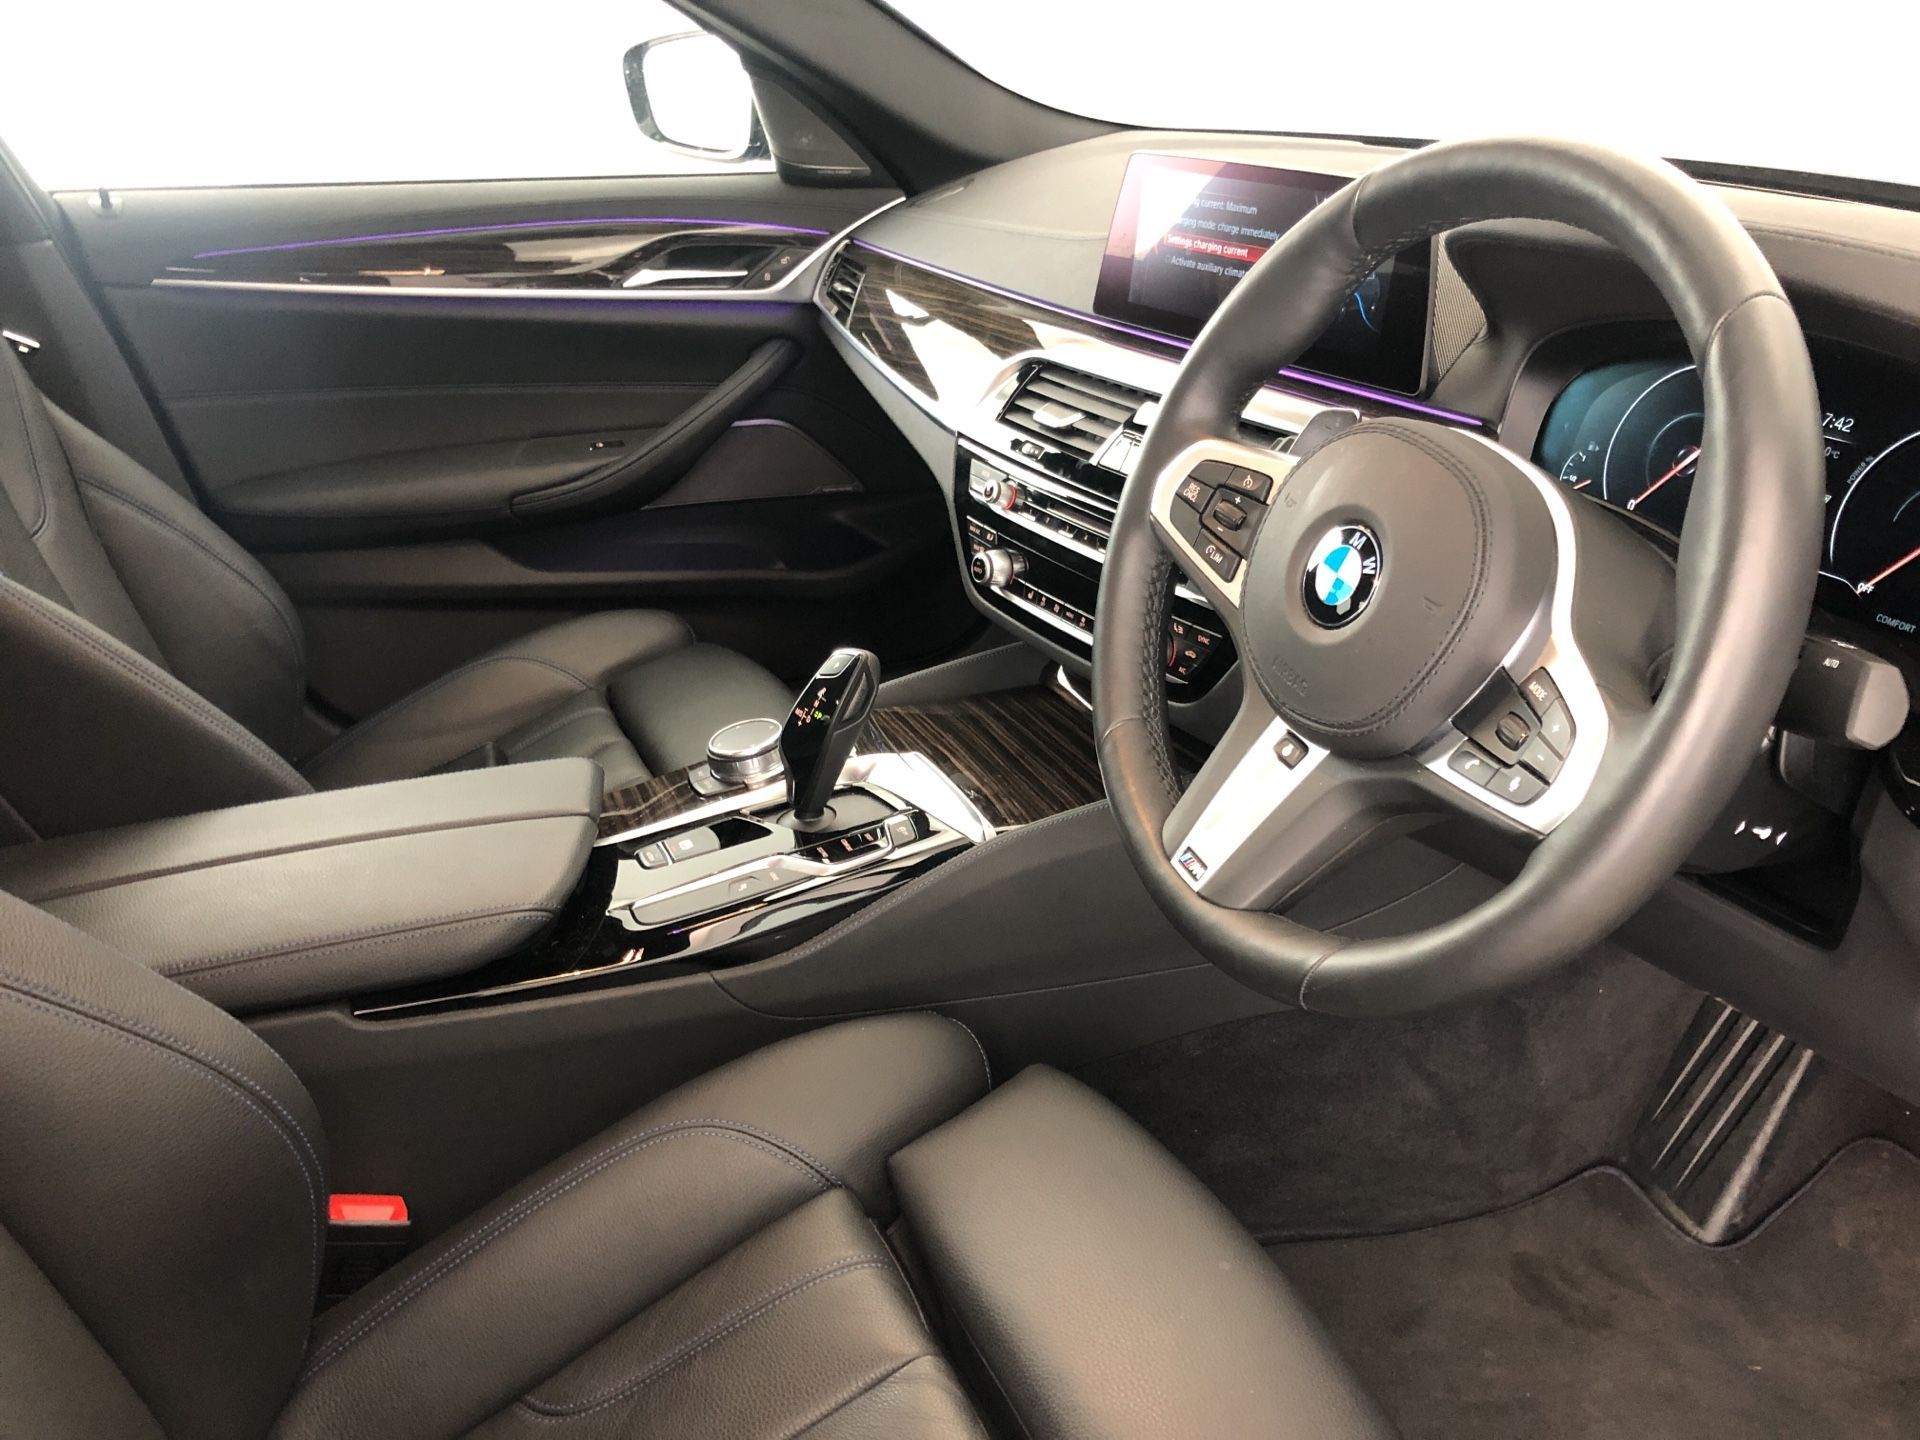 Image 4 - BMW 530e M Sport iPerformance Saloon (YJ68WUP)